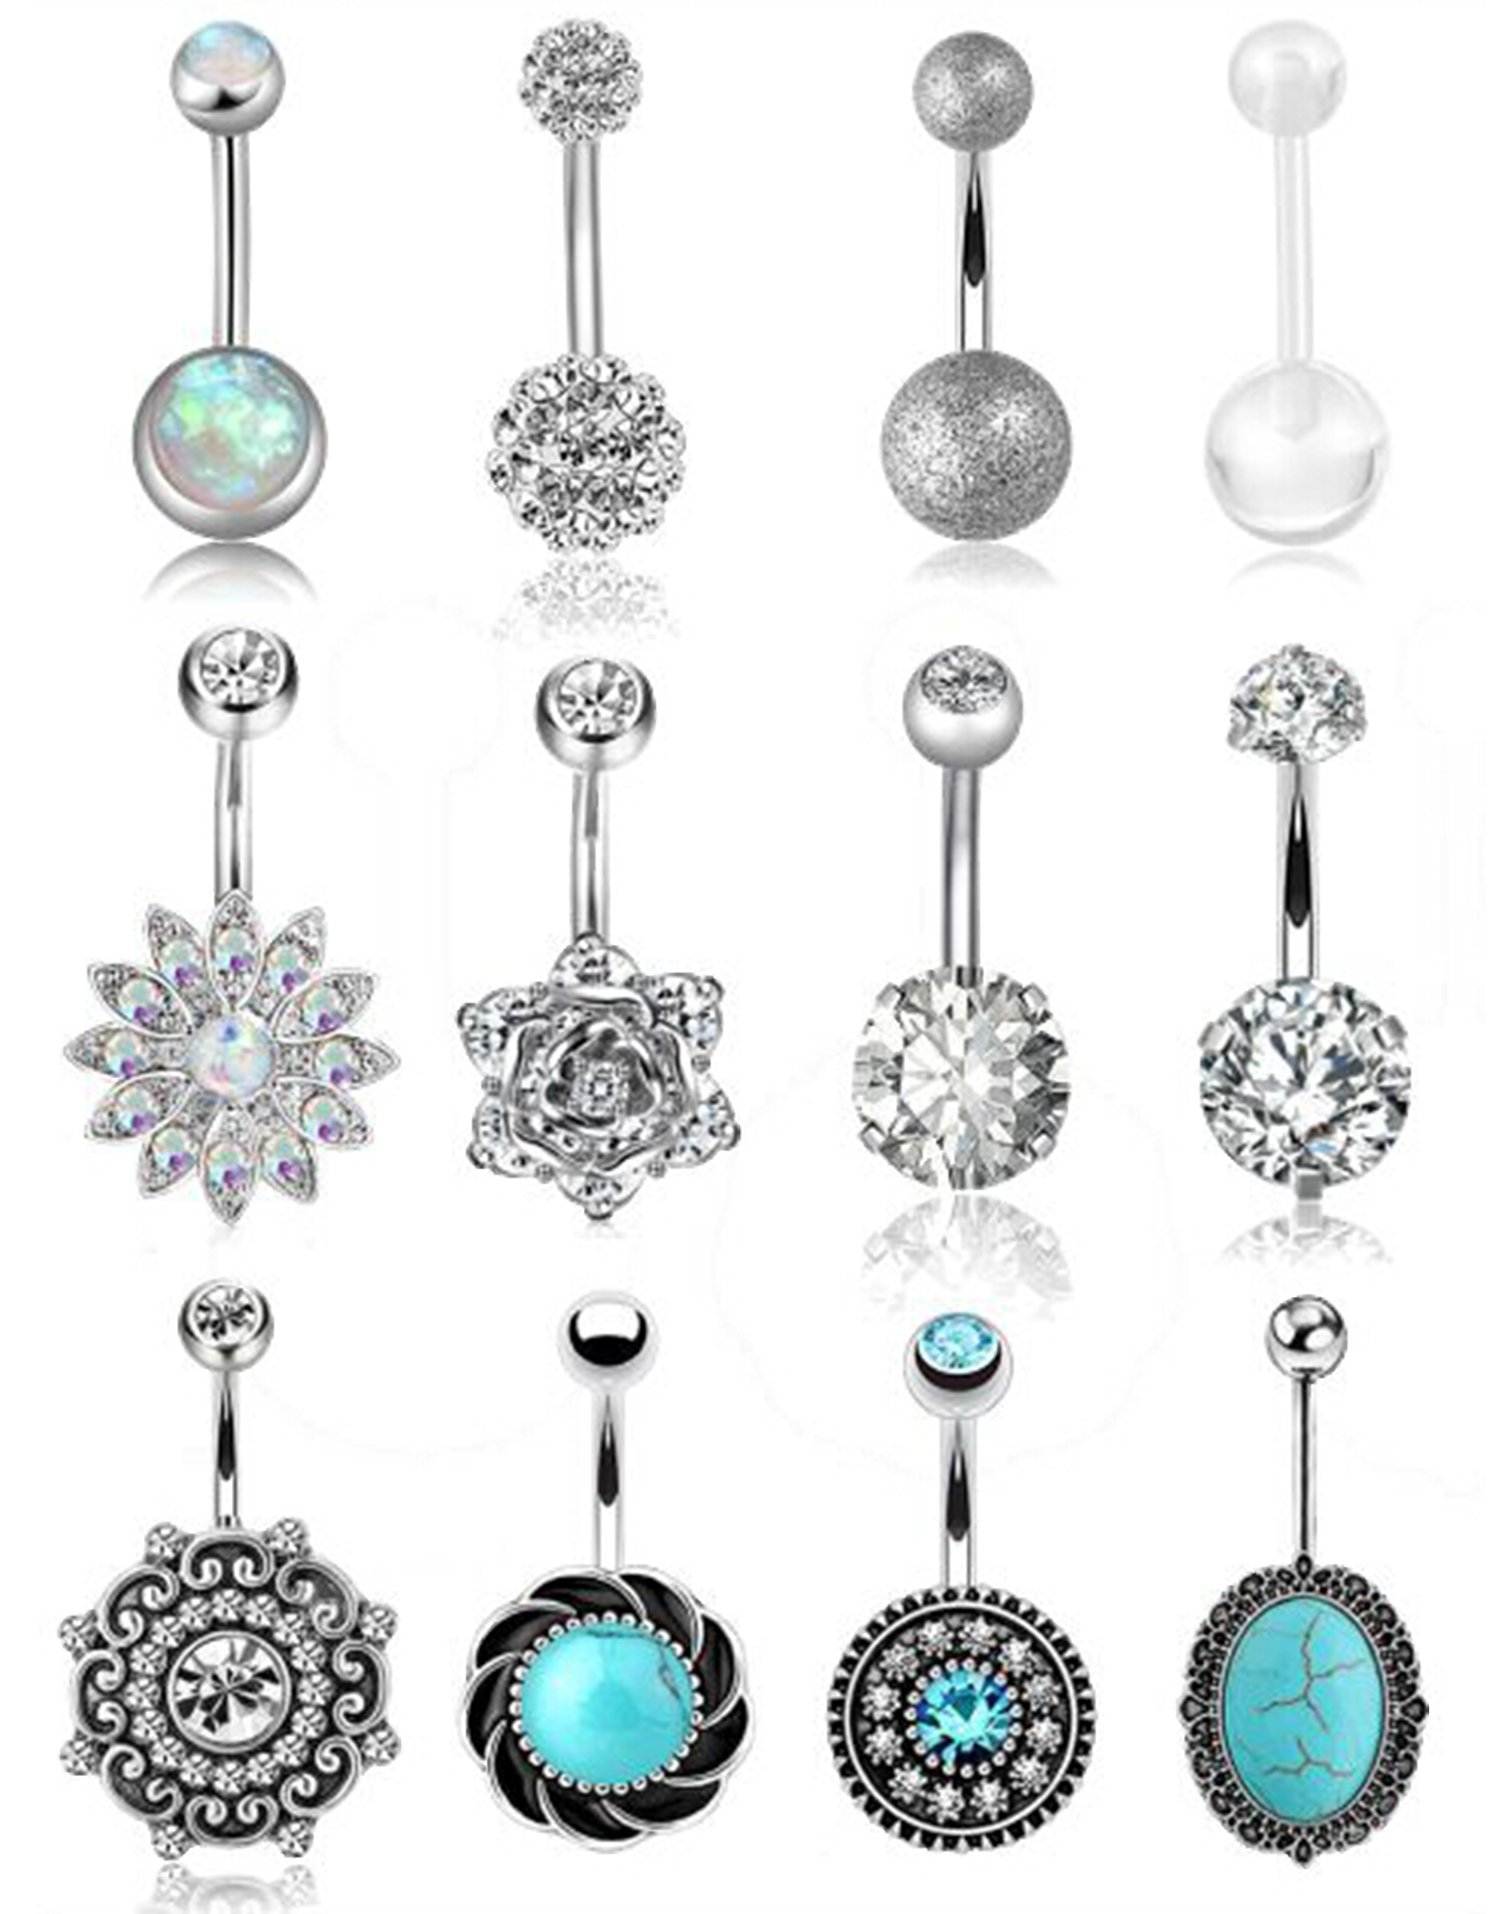 FIBO STEEL 12 Pcs 14G Stainless Steel Belly Button Rings for Women Girls Navel Barbell Body Jewelry Piercing